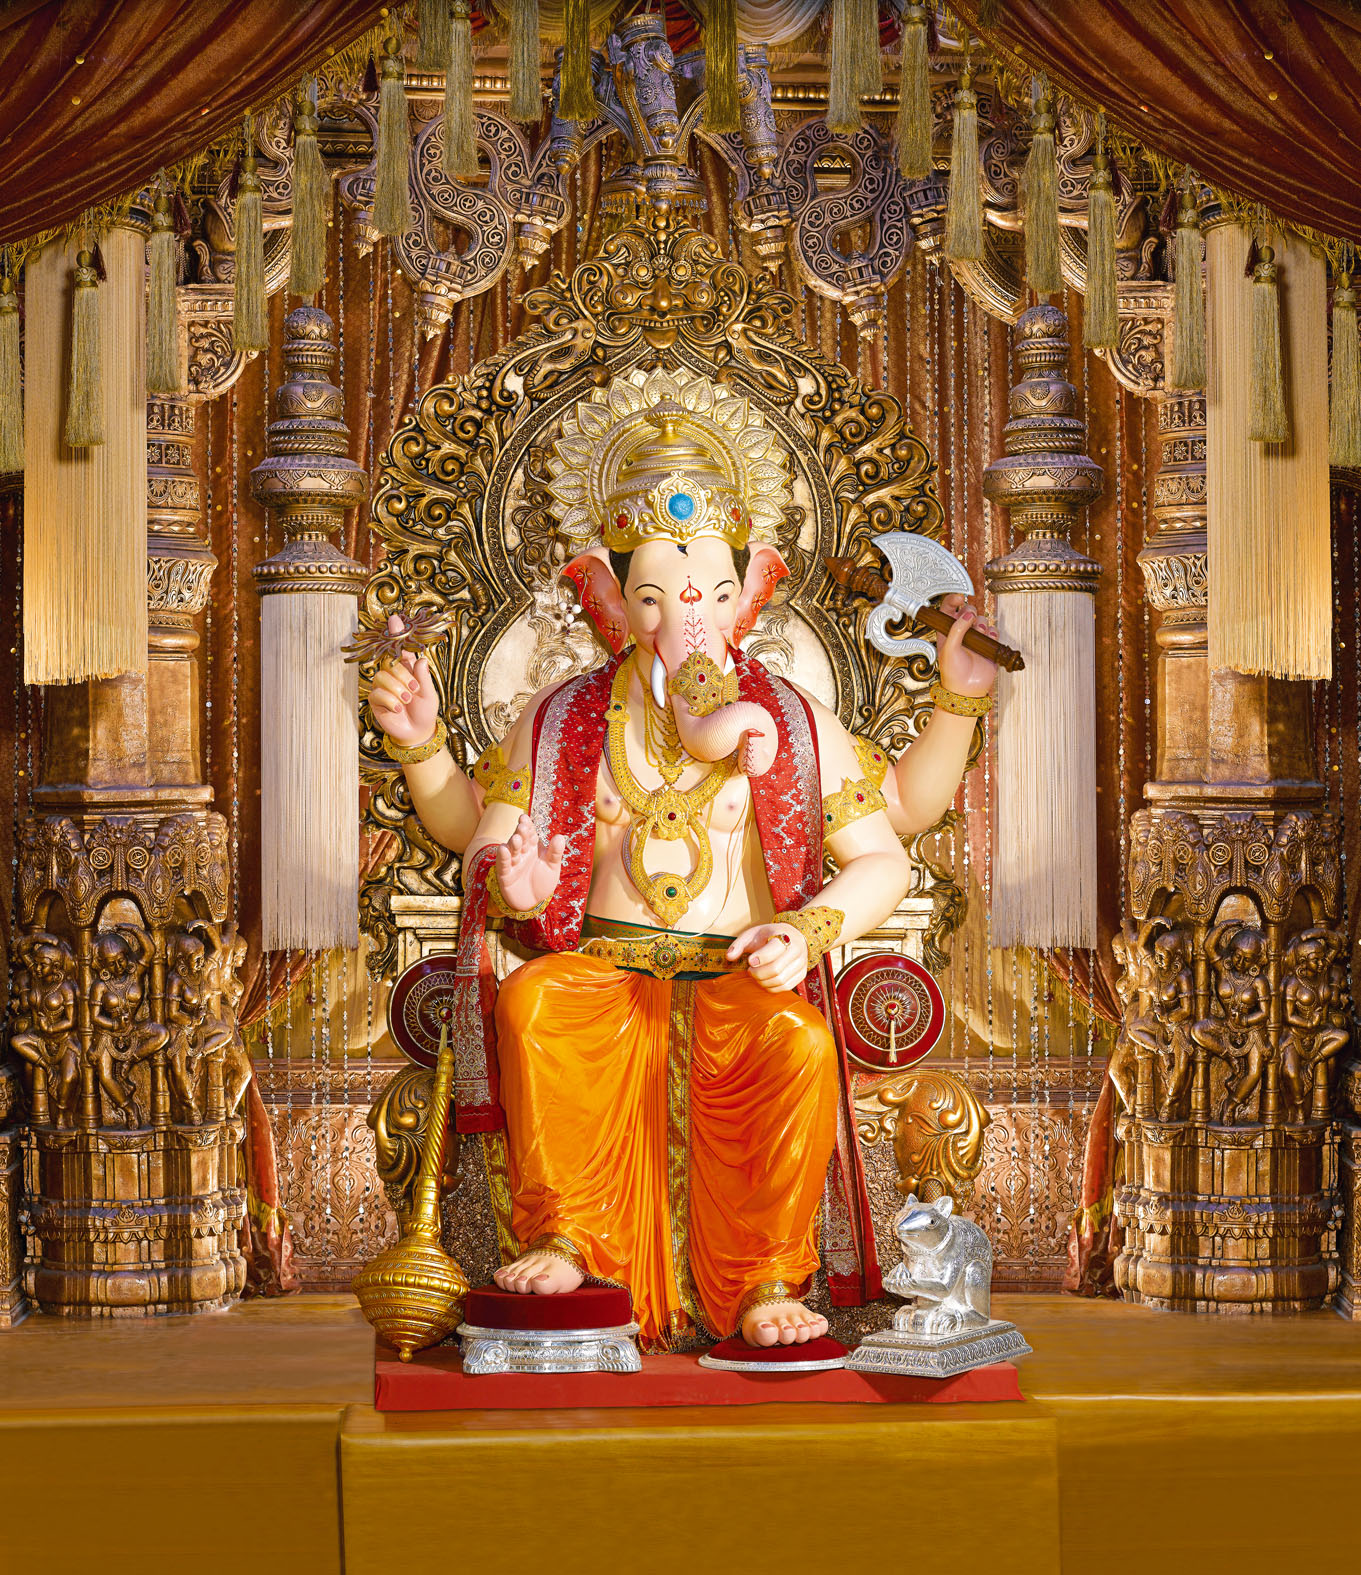 picture: hd wallpaper of ganpati bappa